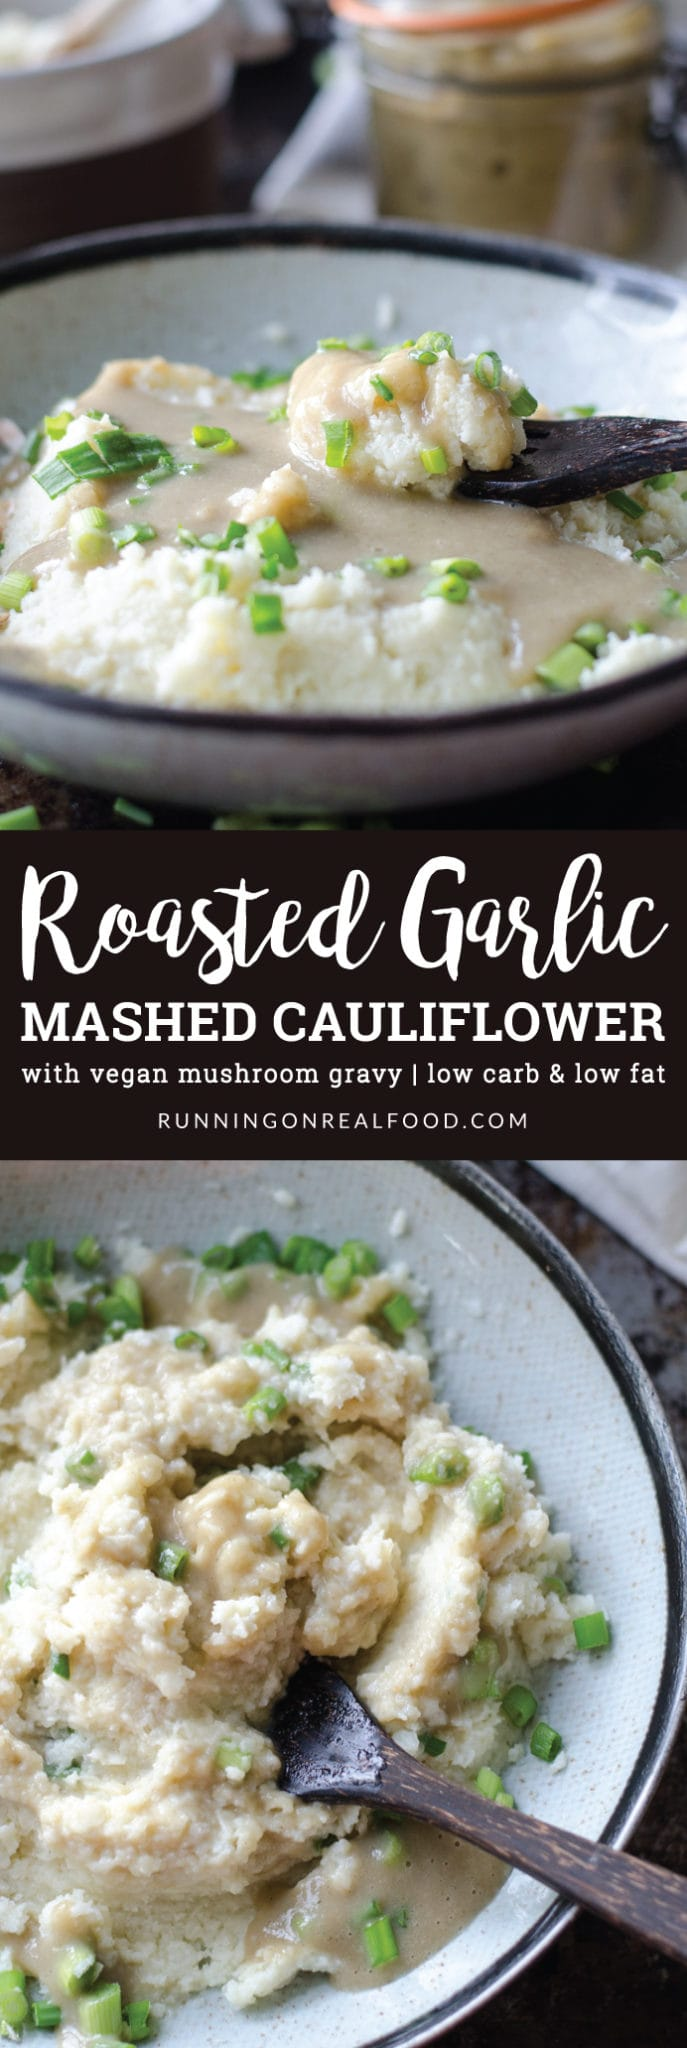 Try Roasted Garlic Mashed Cauliflower with Vegan Mushroom Gravy for a healthy, low carb & low fat alternative to potatoes and gravy at your holiday meals. Loaded with flavour, extra creamy, completely plant-based, gluten-free, oil-free and sugar-free.